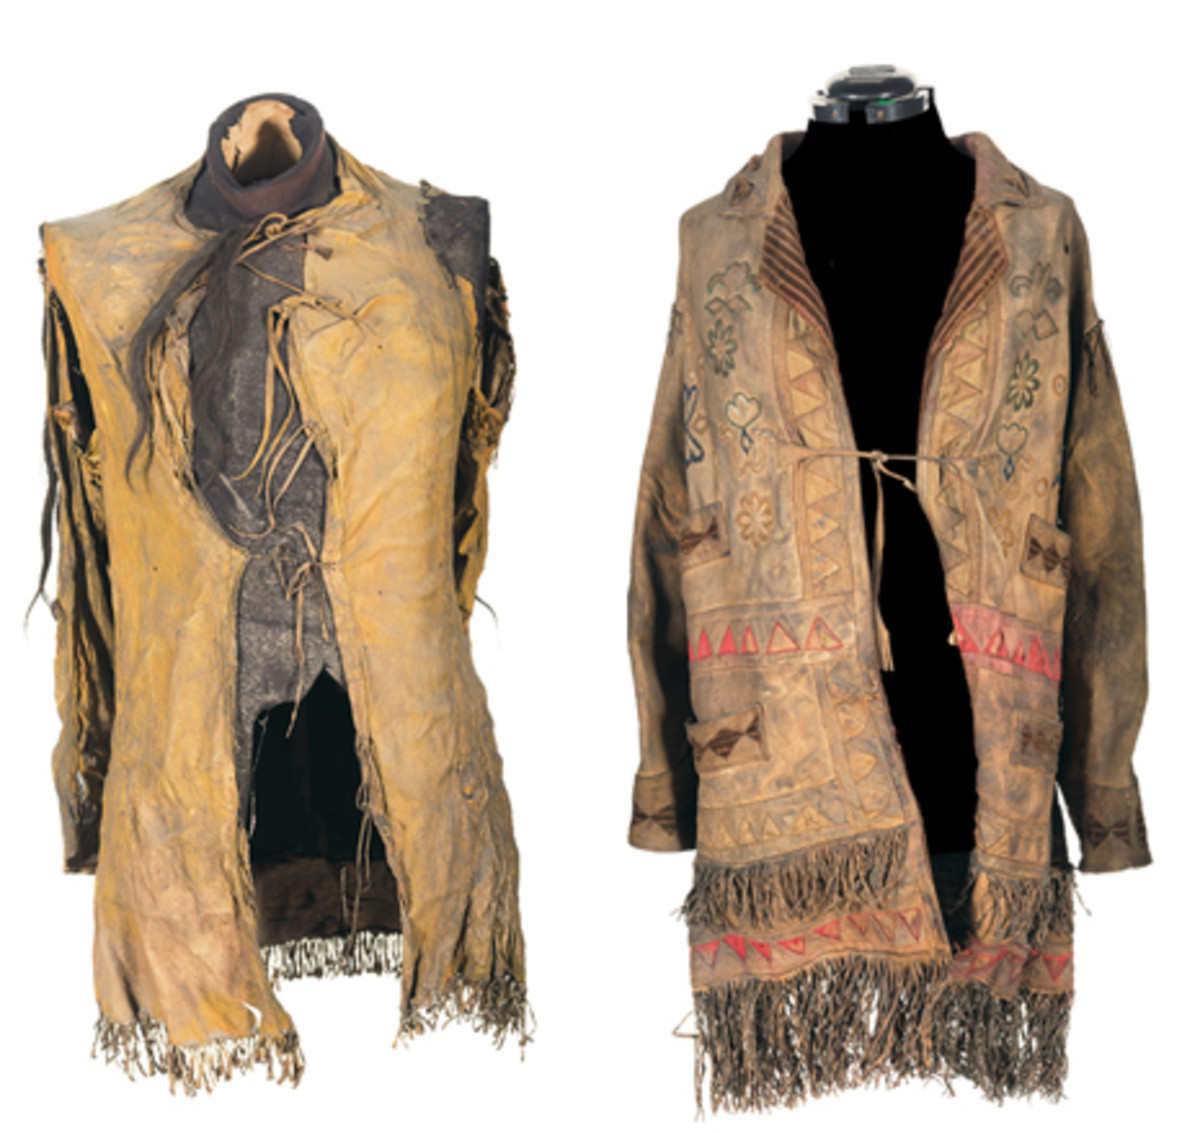 Documented Historic Indian Wars Period Elk skin Jacket Attributed as the Lt. Col. George Armstrong Custer Death Jacket Accompanied by Buckskin Shirt Attributed to Victor at the Battle of Little Big Horn Lakota Tribe Chief.